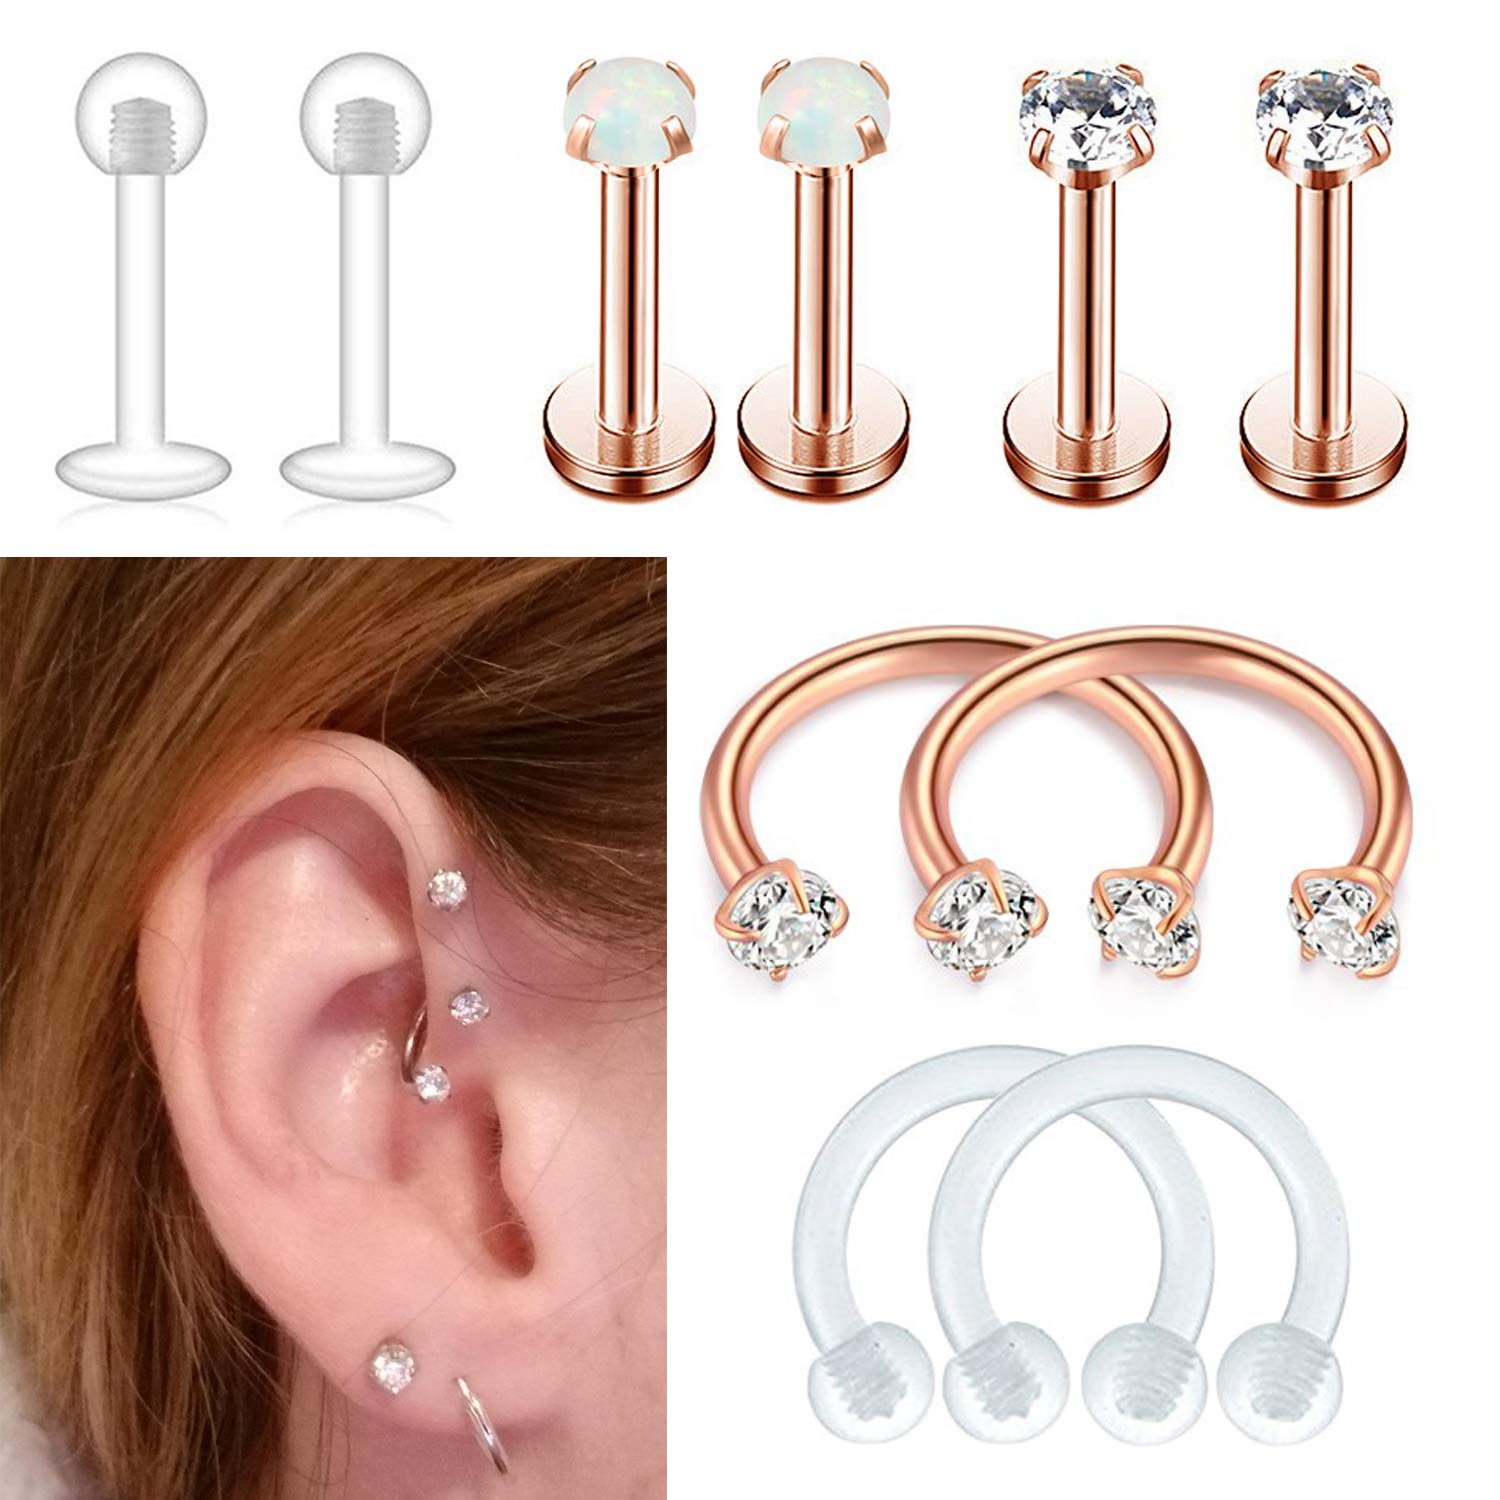 Fibo Steel 10 Pcs 16g Stainless Steel Tragus Piercing Earrings Studs For Women Girls Cartilage Helix Conch Daith Lip Piercing Jewelry Set